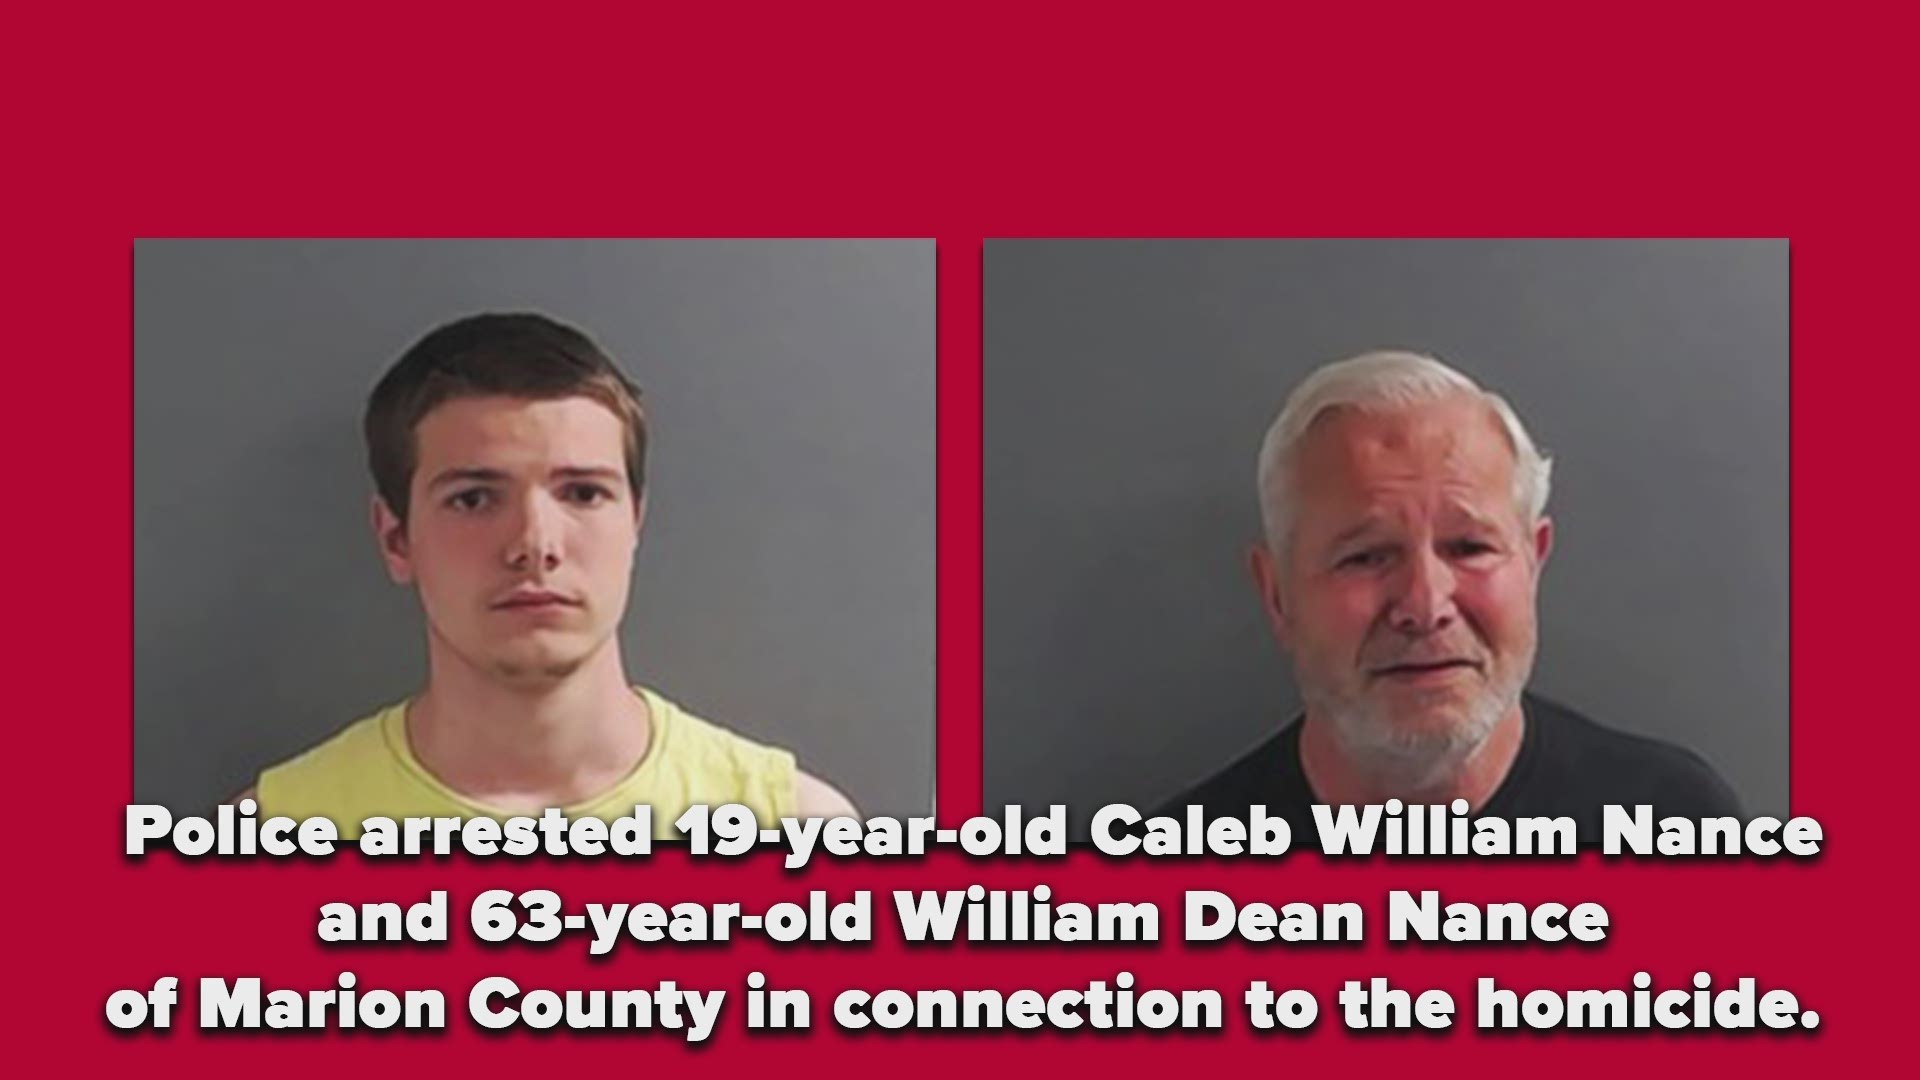 Father Son Arrested In Connection To Marion Co Homicide